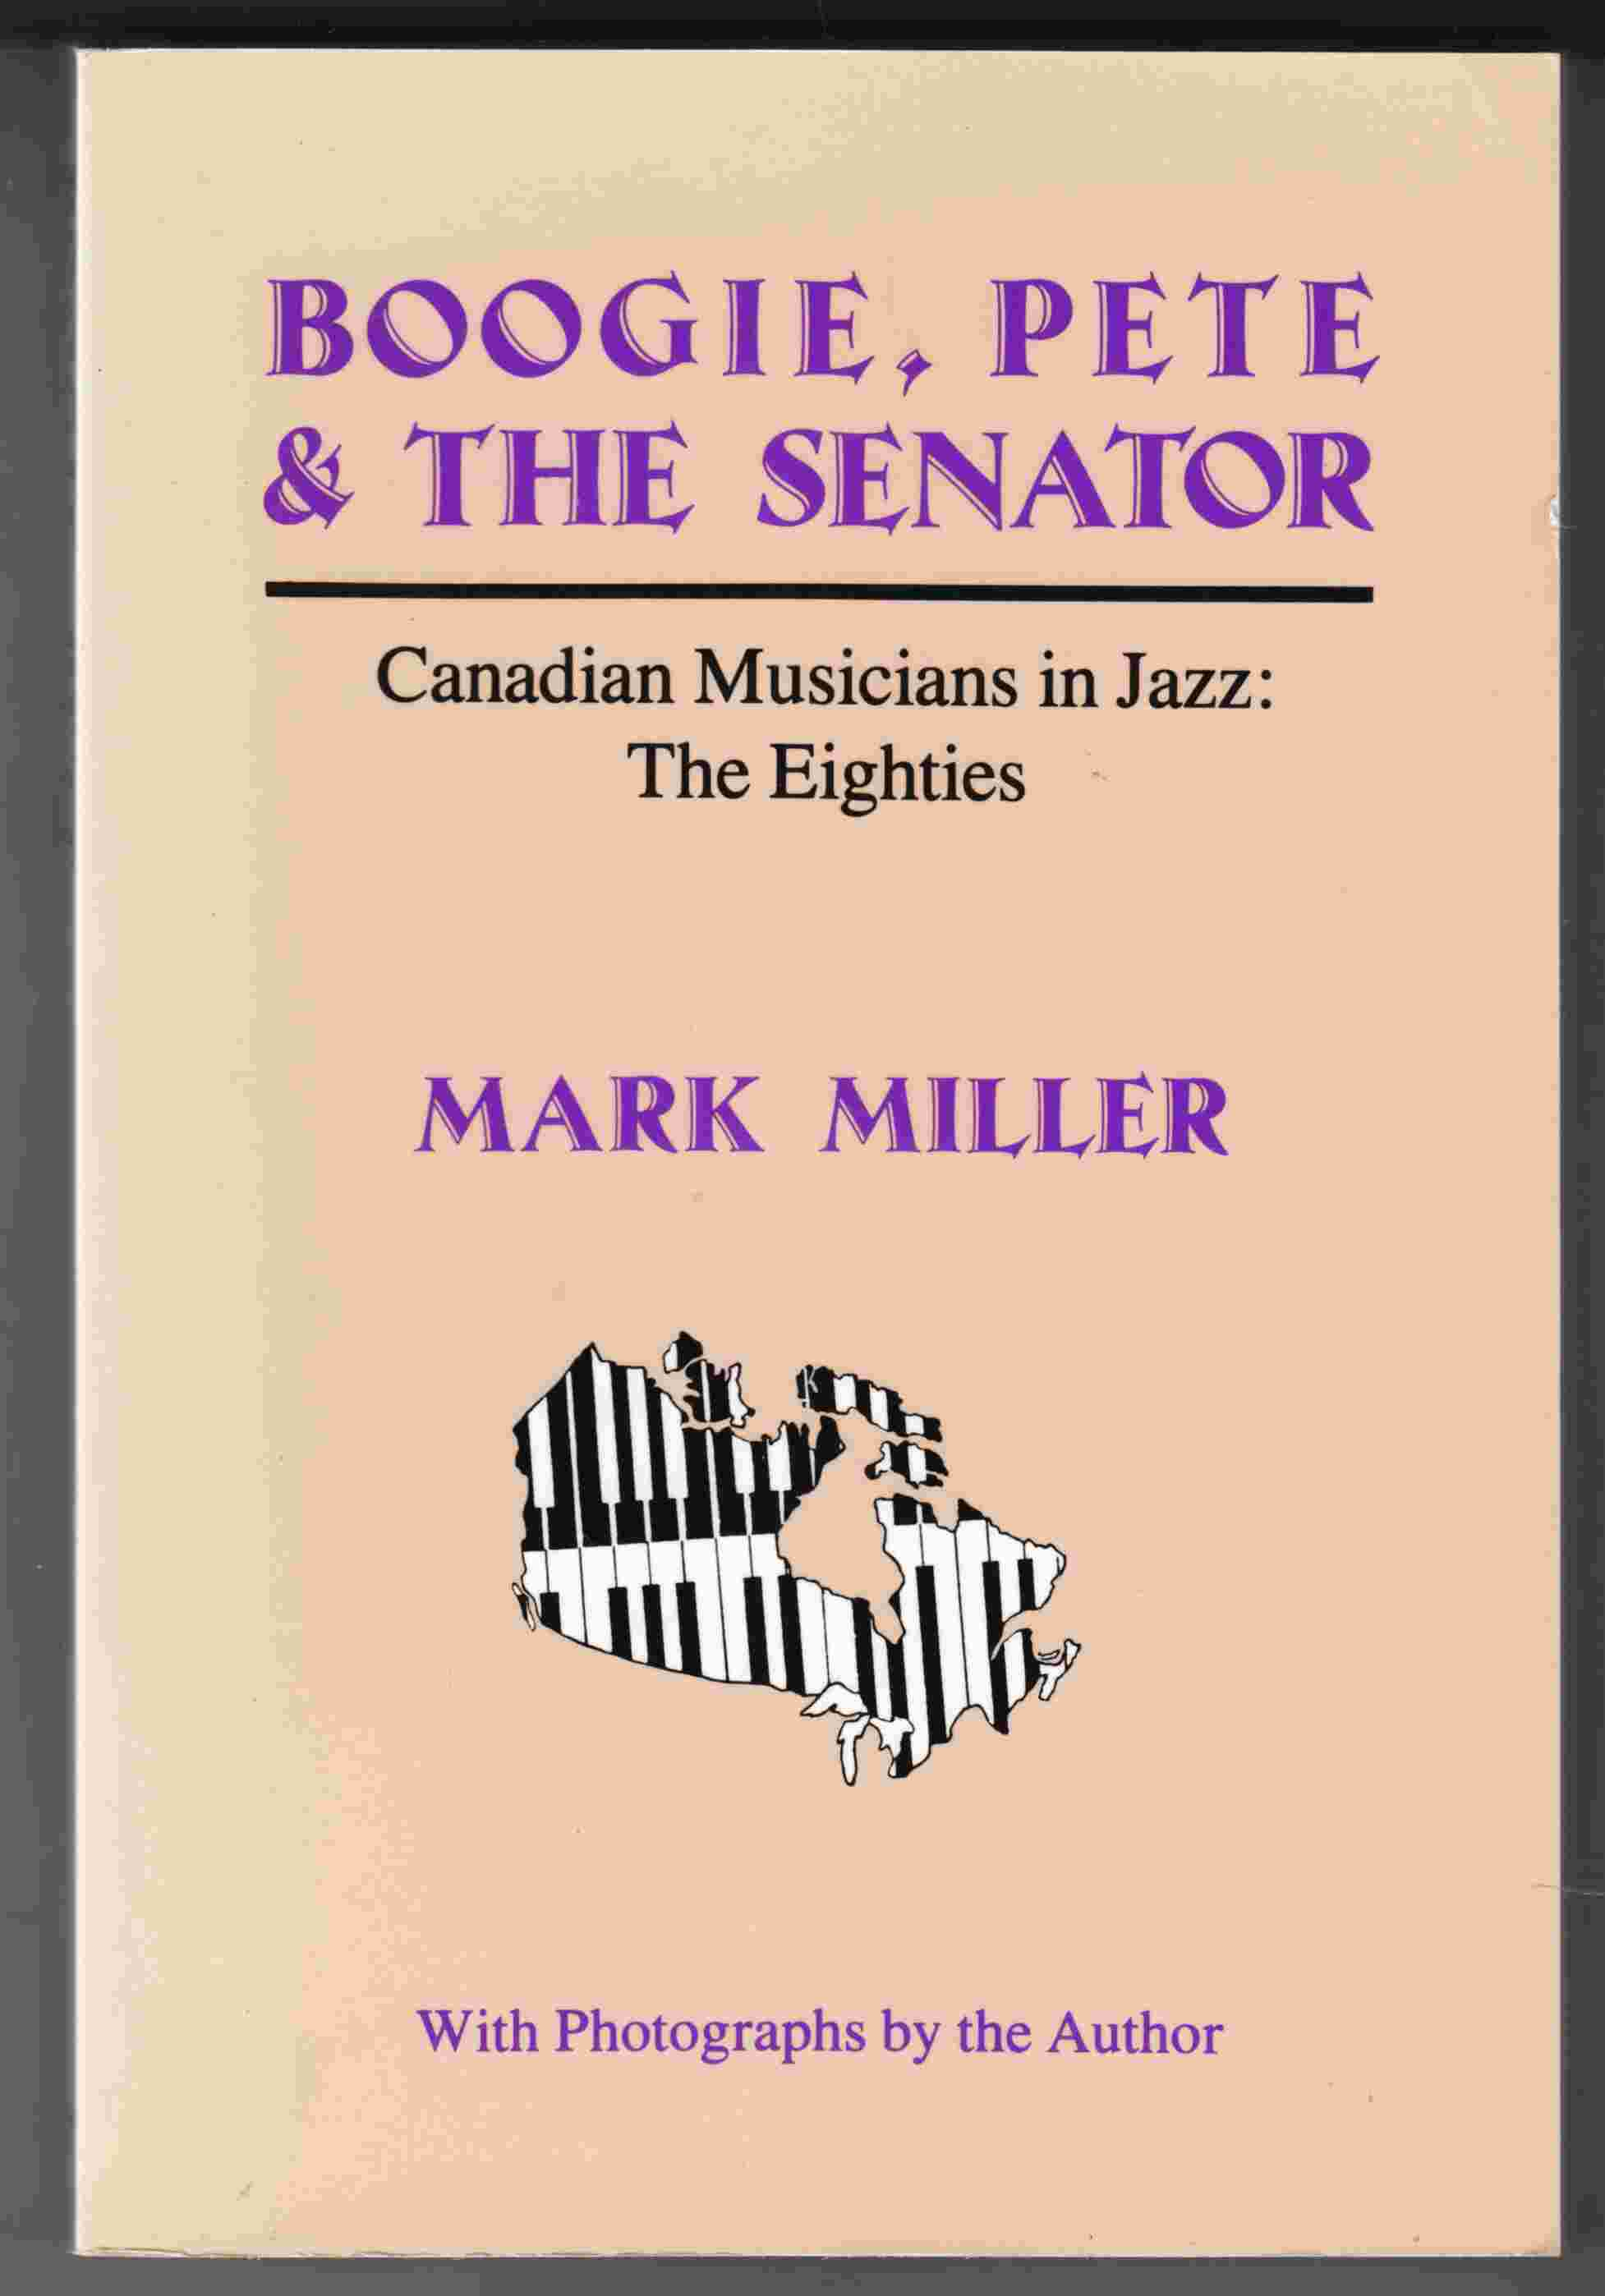 Image for Boogie, Pete & the Senator Canadian Musicians in Jazz: The Eighties